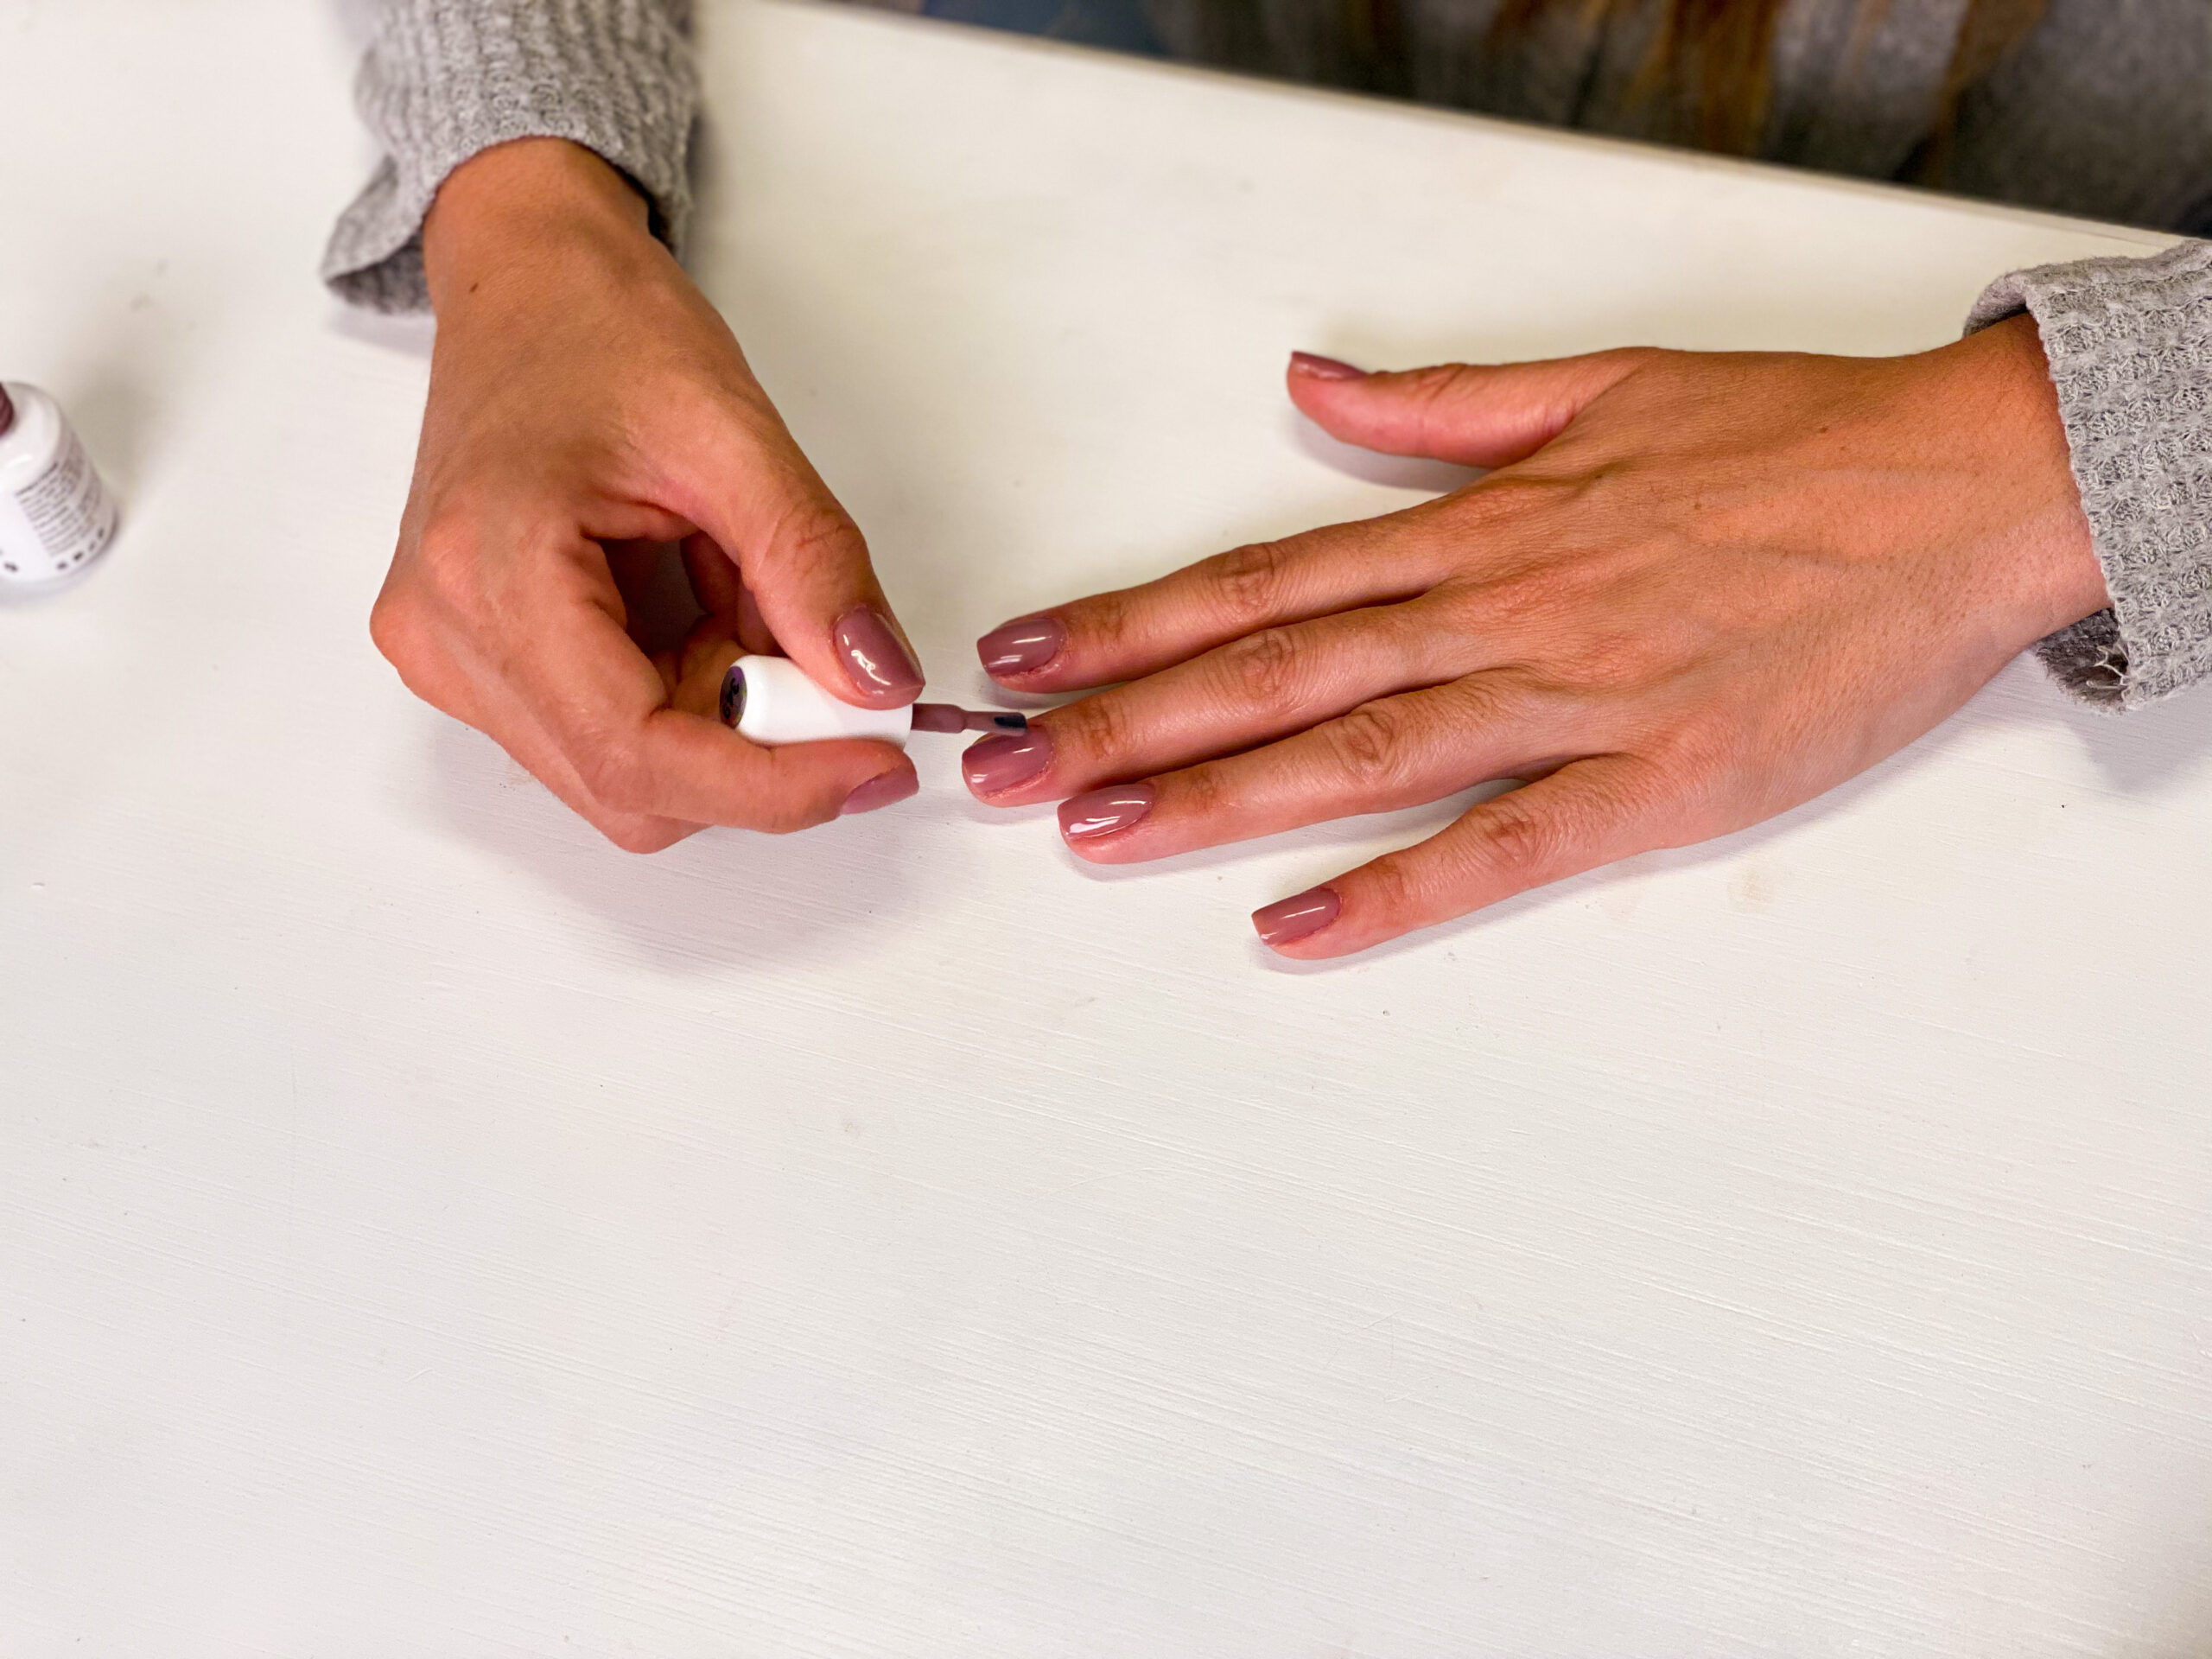 HOW TO: DIY Gel Manicure AT HOME